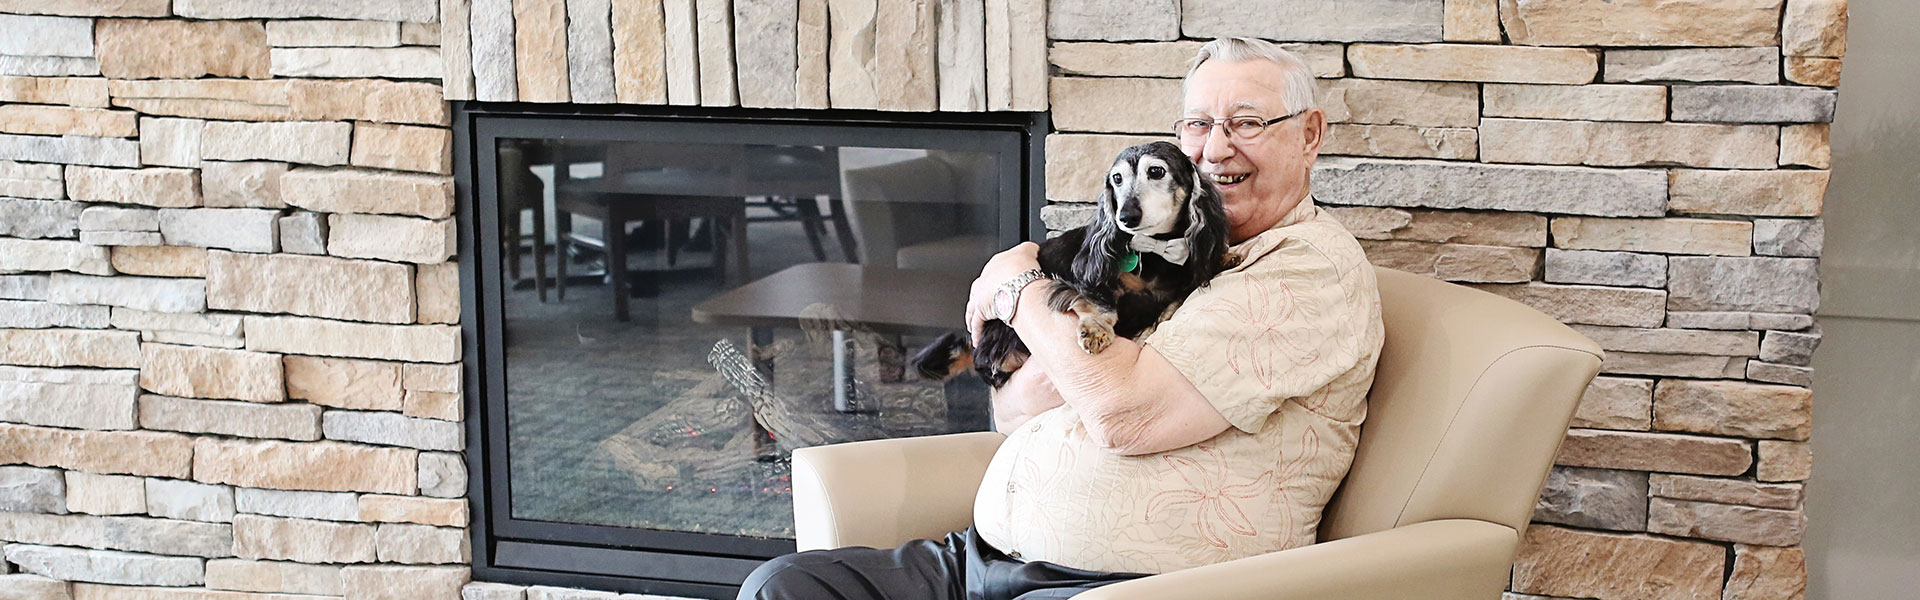 Pet-friendly retirement living at Rotary Villas